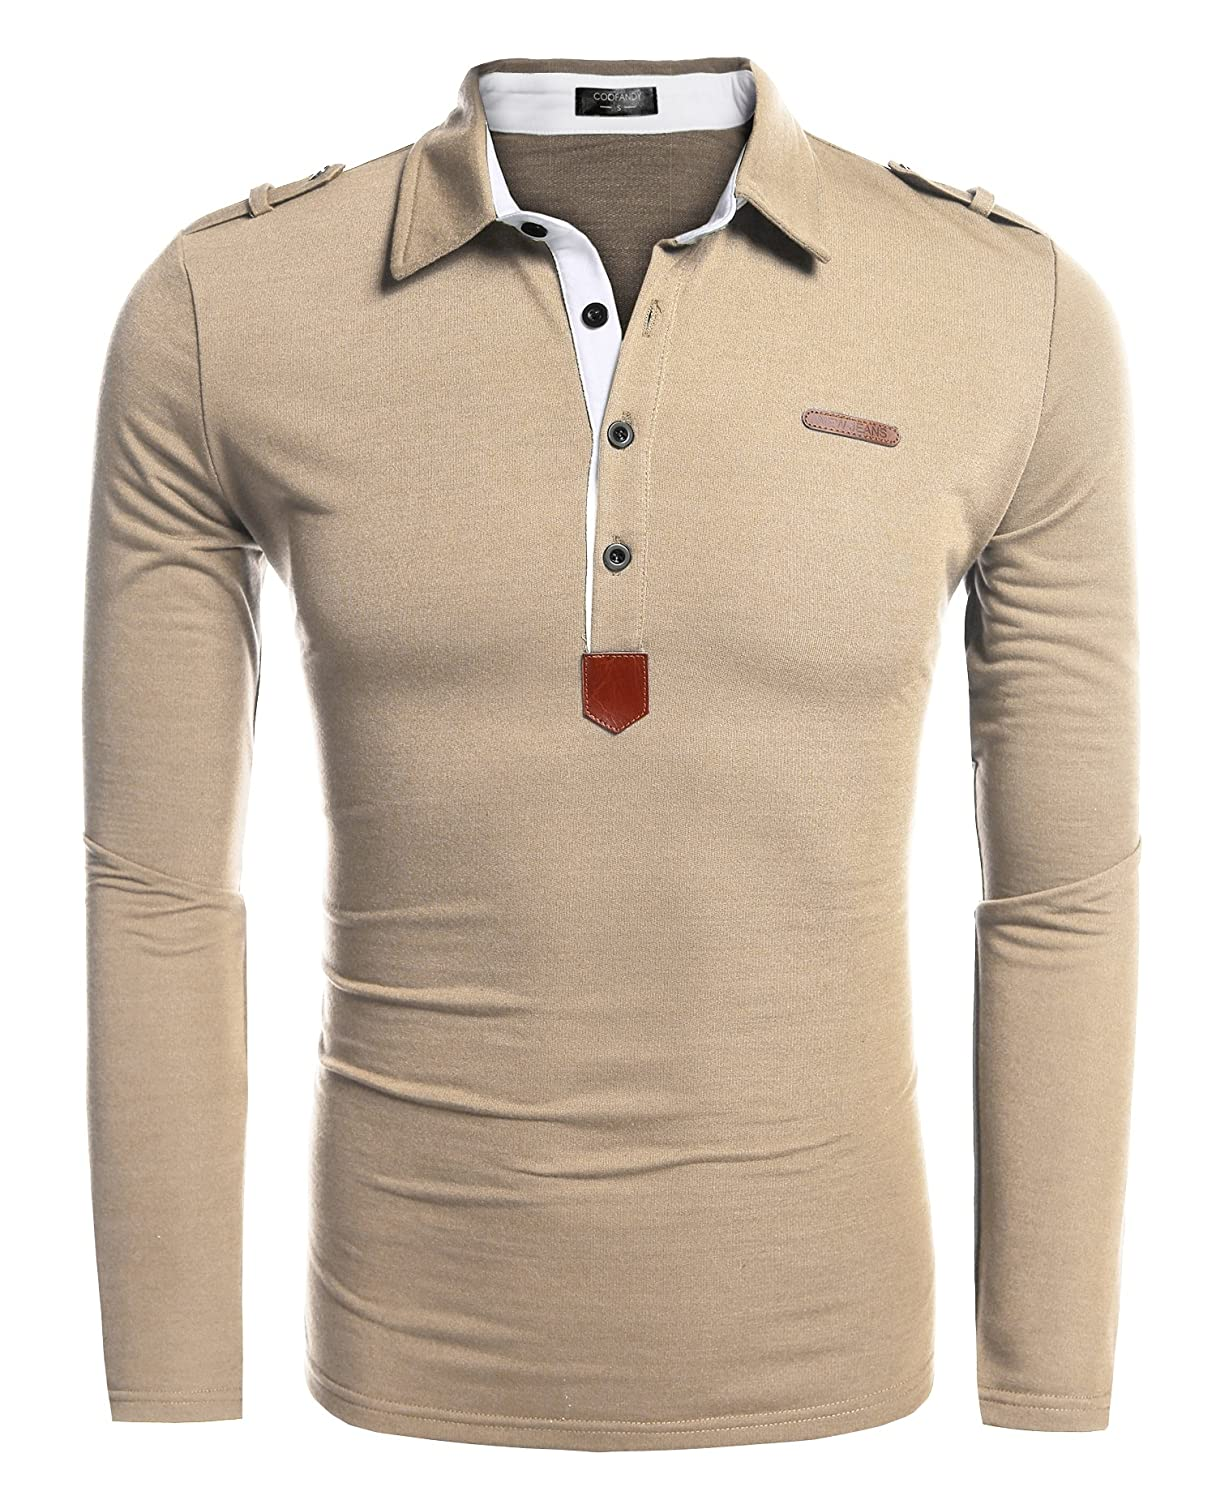 Coofandy Mens Long Sleeve Polo Shirt Casual Slim Fit Classic Golf Polo T Shirts